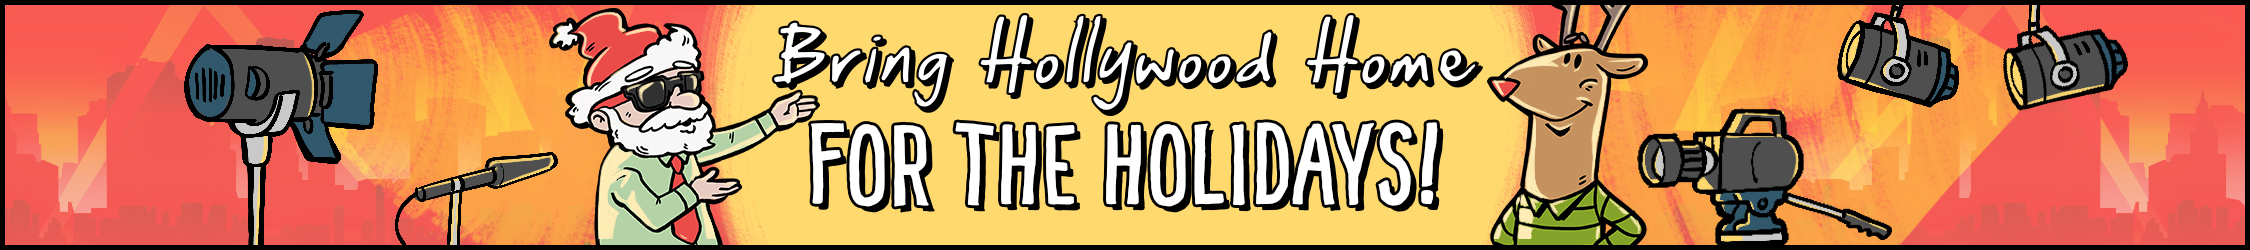 Bring Hollywood Home for the Holidays